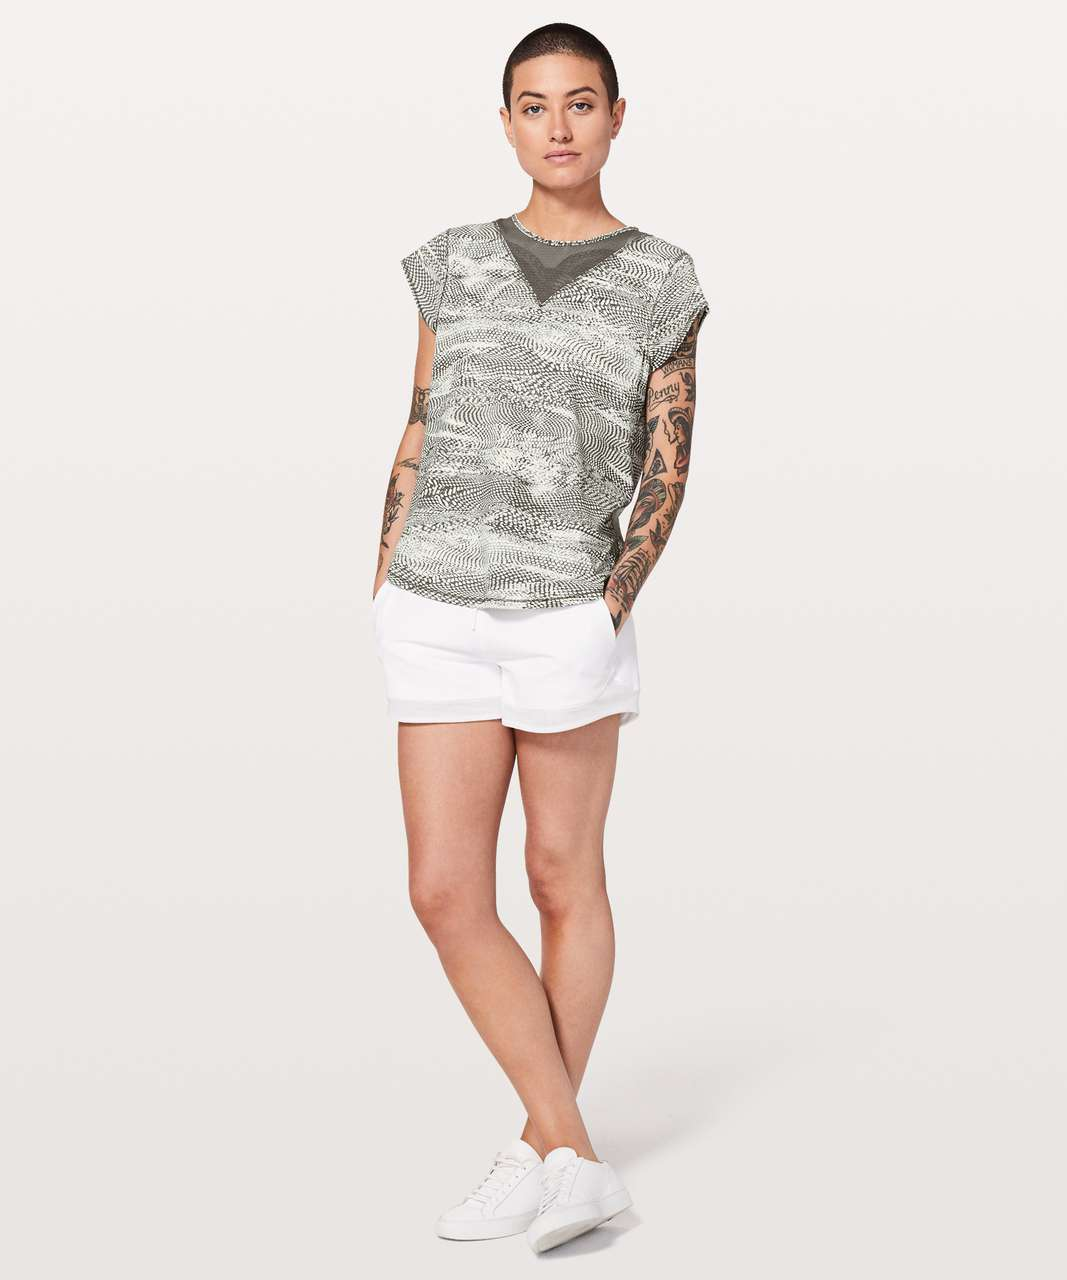 Lululemon For The Run Short Sleeve - Swerve Vapor Metal Grey / Metal Grey